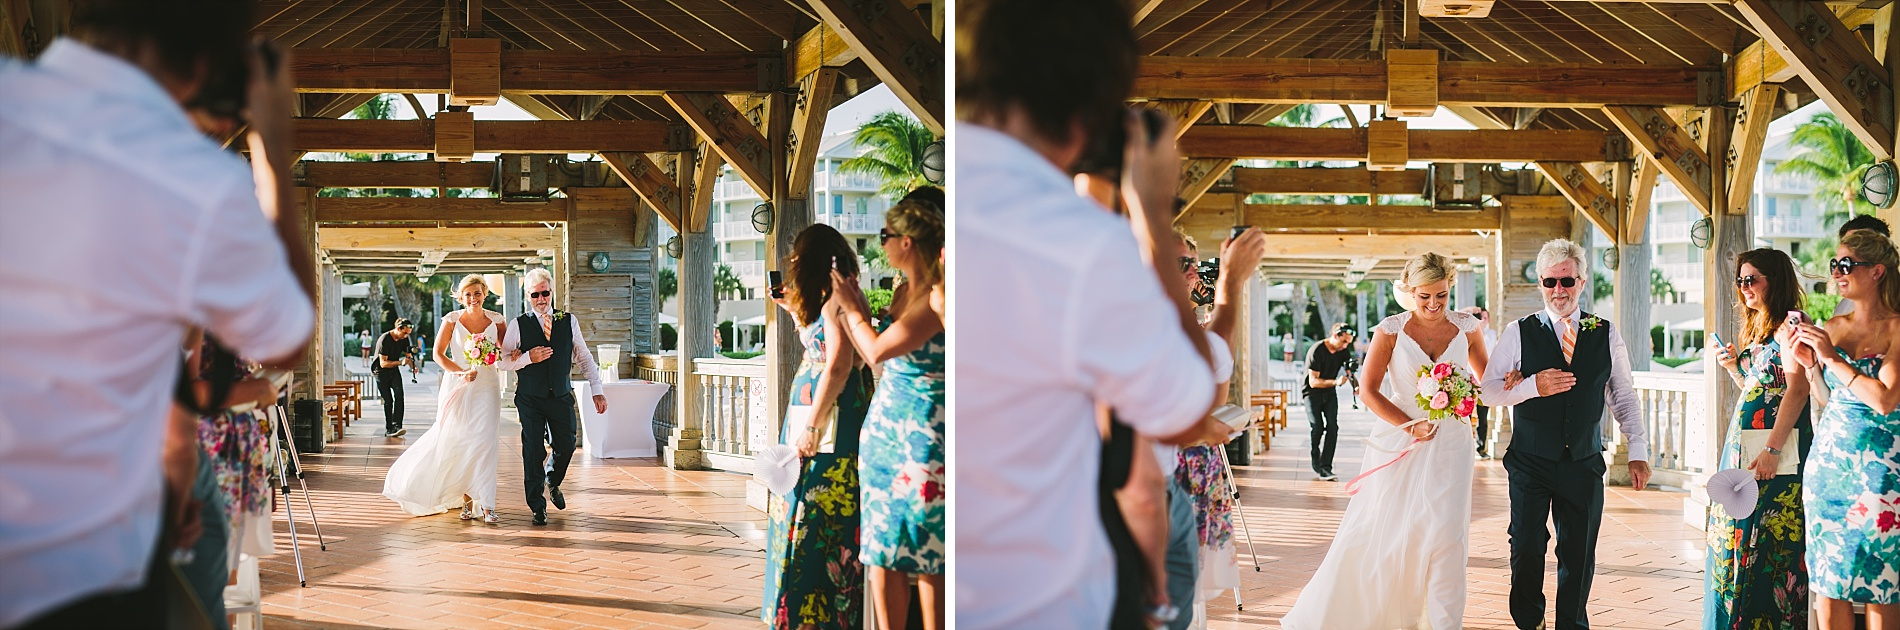 key west wedding photography 032